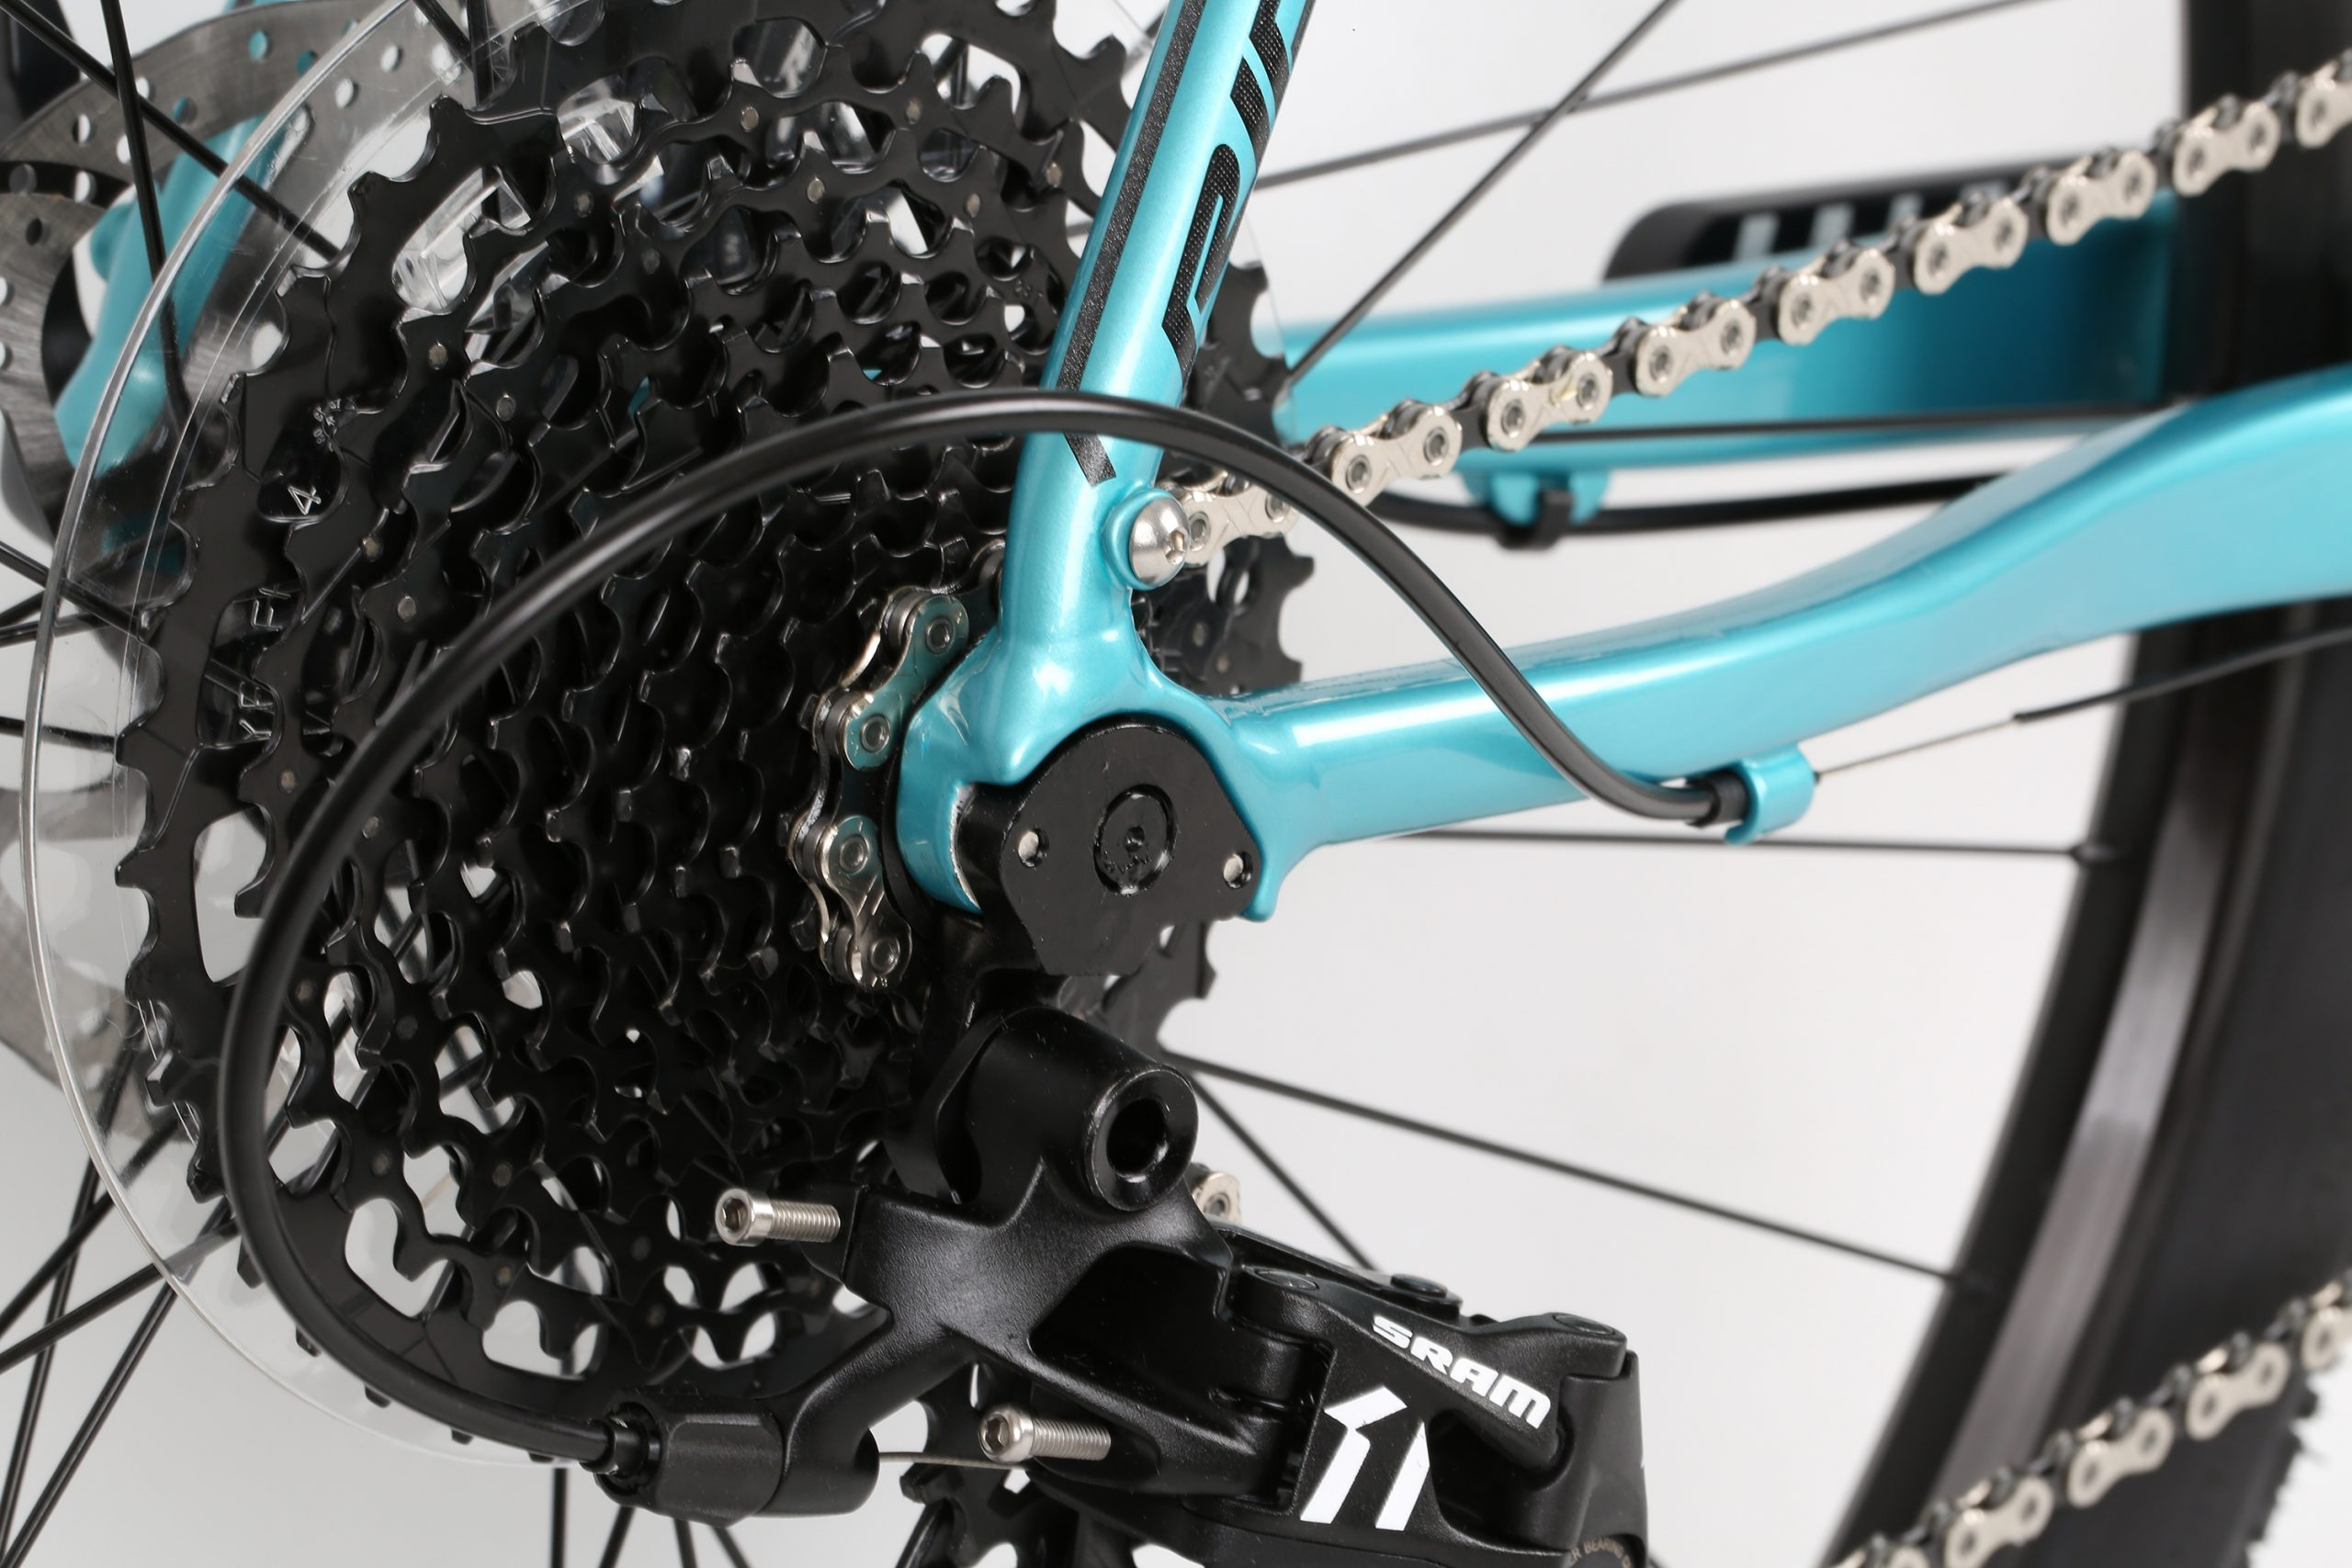 8712c1a3 0ae5 4840 ae5c d465032a77a1.396ca2ea382bf9d00d0a9bac0ecf270d scaled Ridley X-Trail Gravel Bicycle